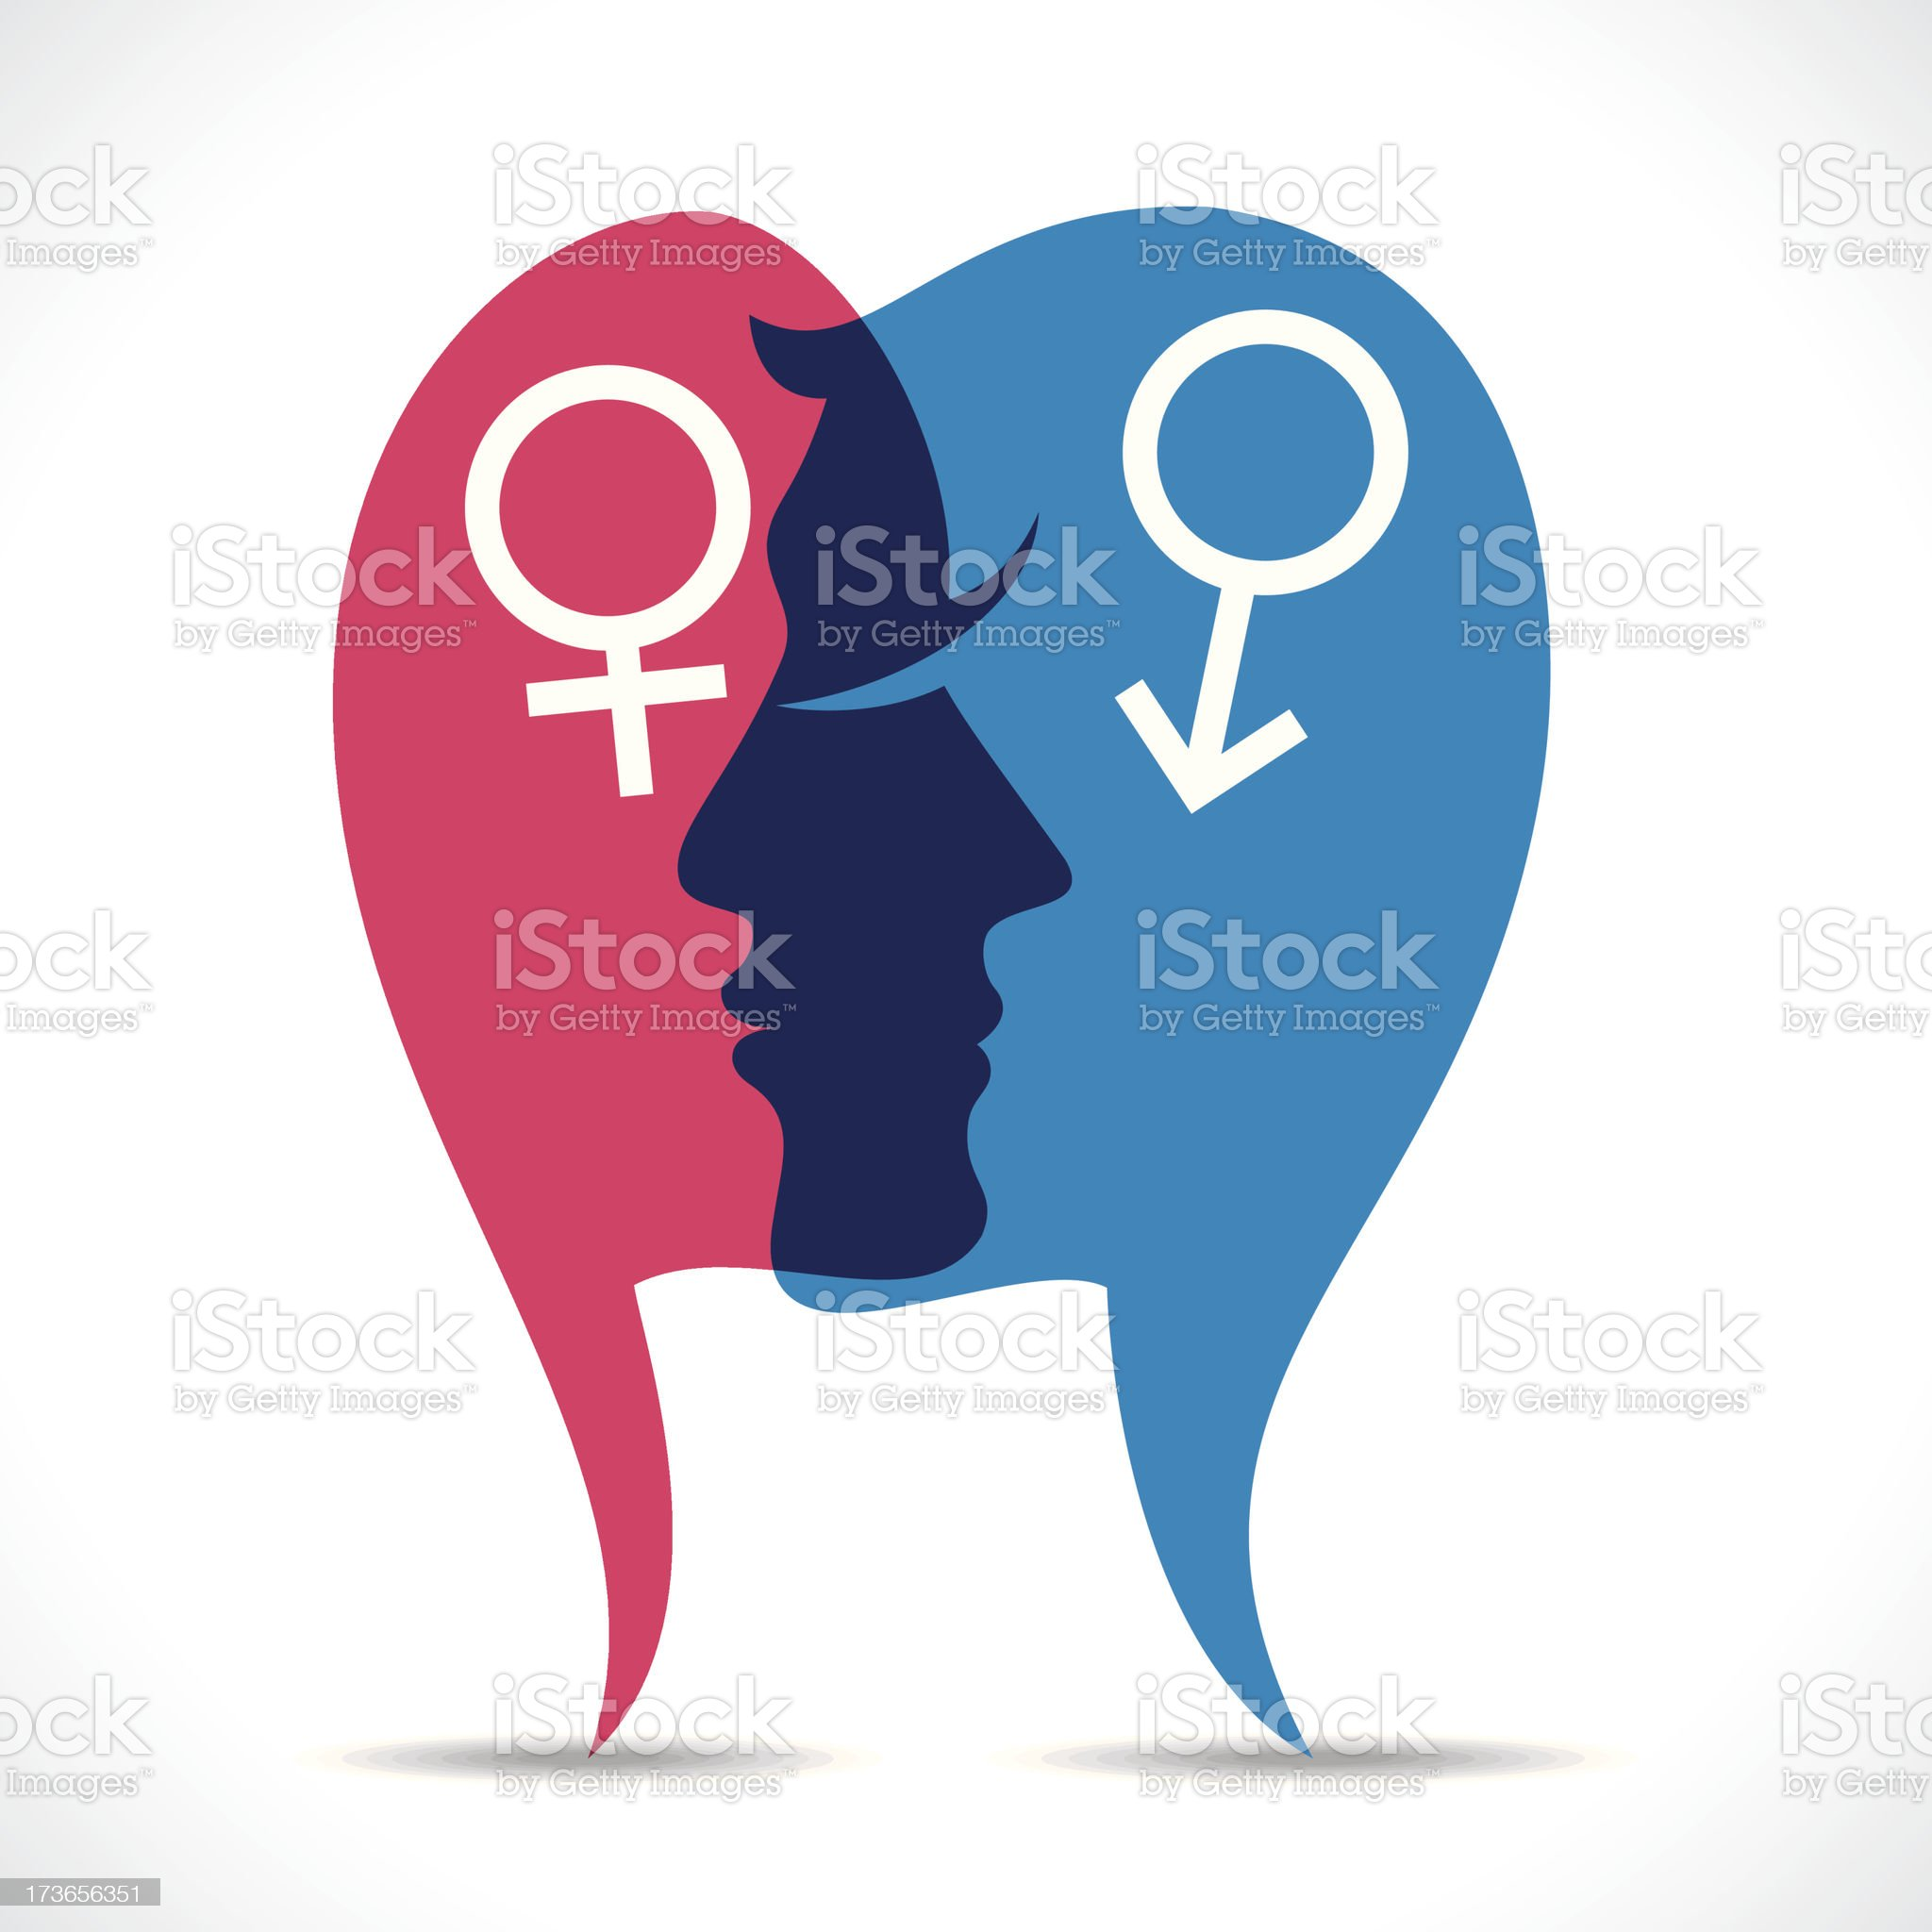 male and female icon royalty-free stock vector art